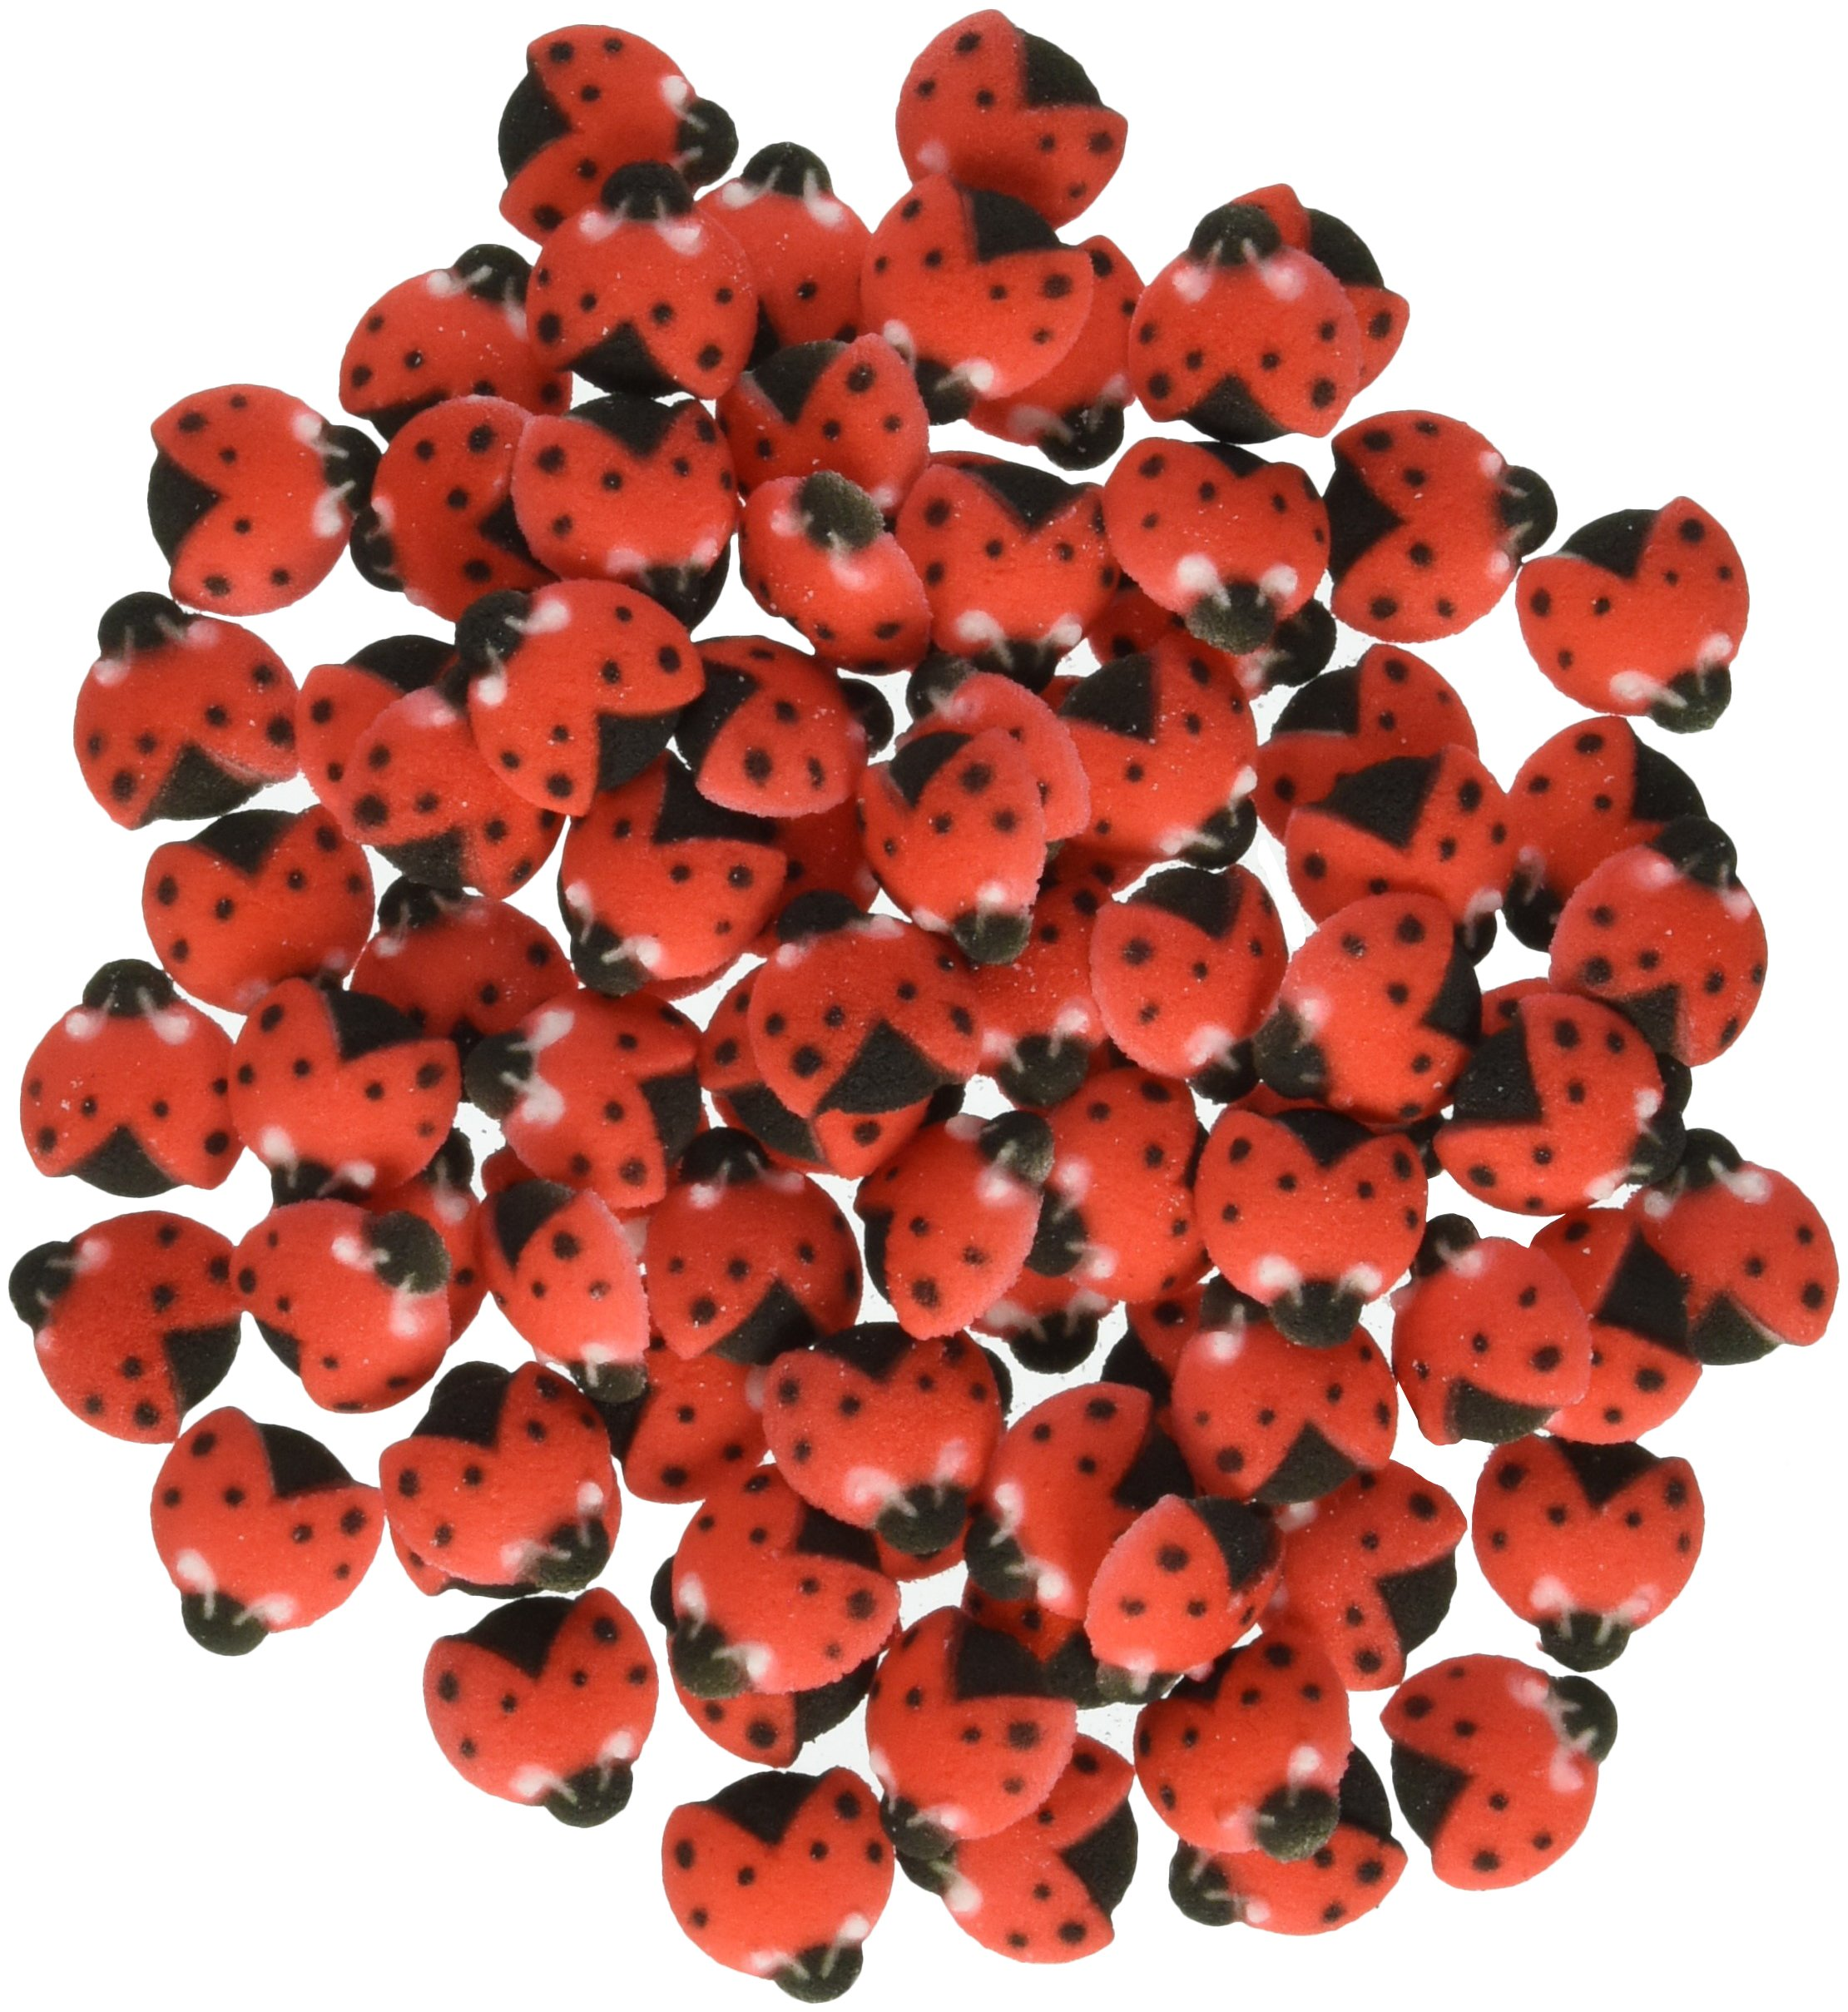 Lucks Dec-Ons Decorations Molded Sugar/Cup-Cake Topper, Ladybugs, 3/4 Inch, 176 Count